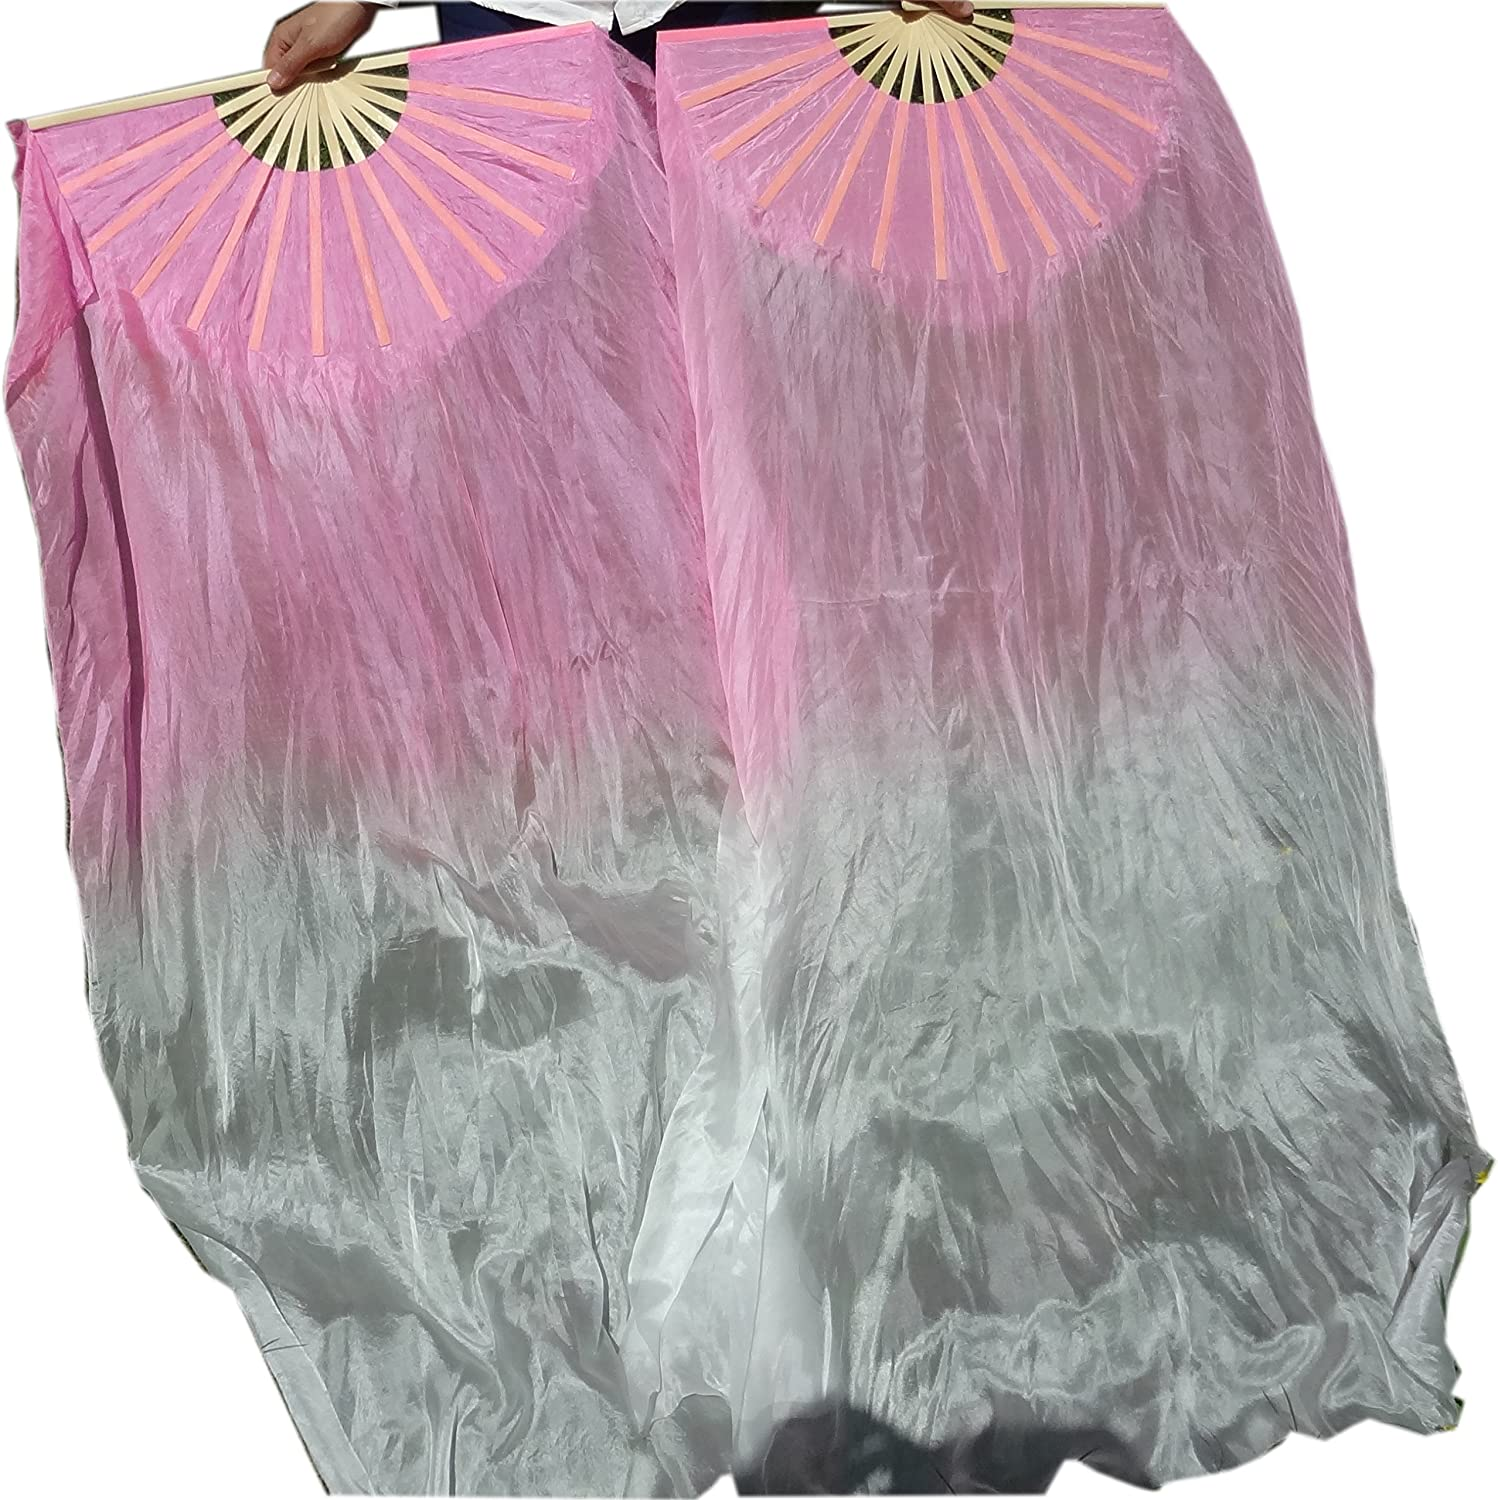 HAND MADE BELLY DANCE 100/% SILK VEILS  five colors veils FREE SHIPPING BAG